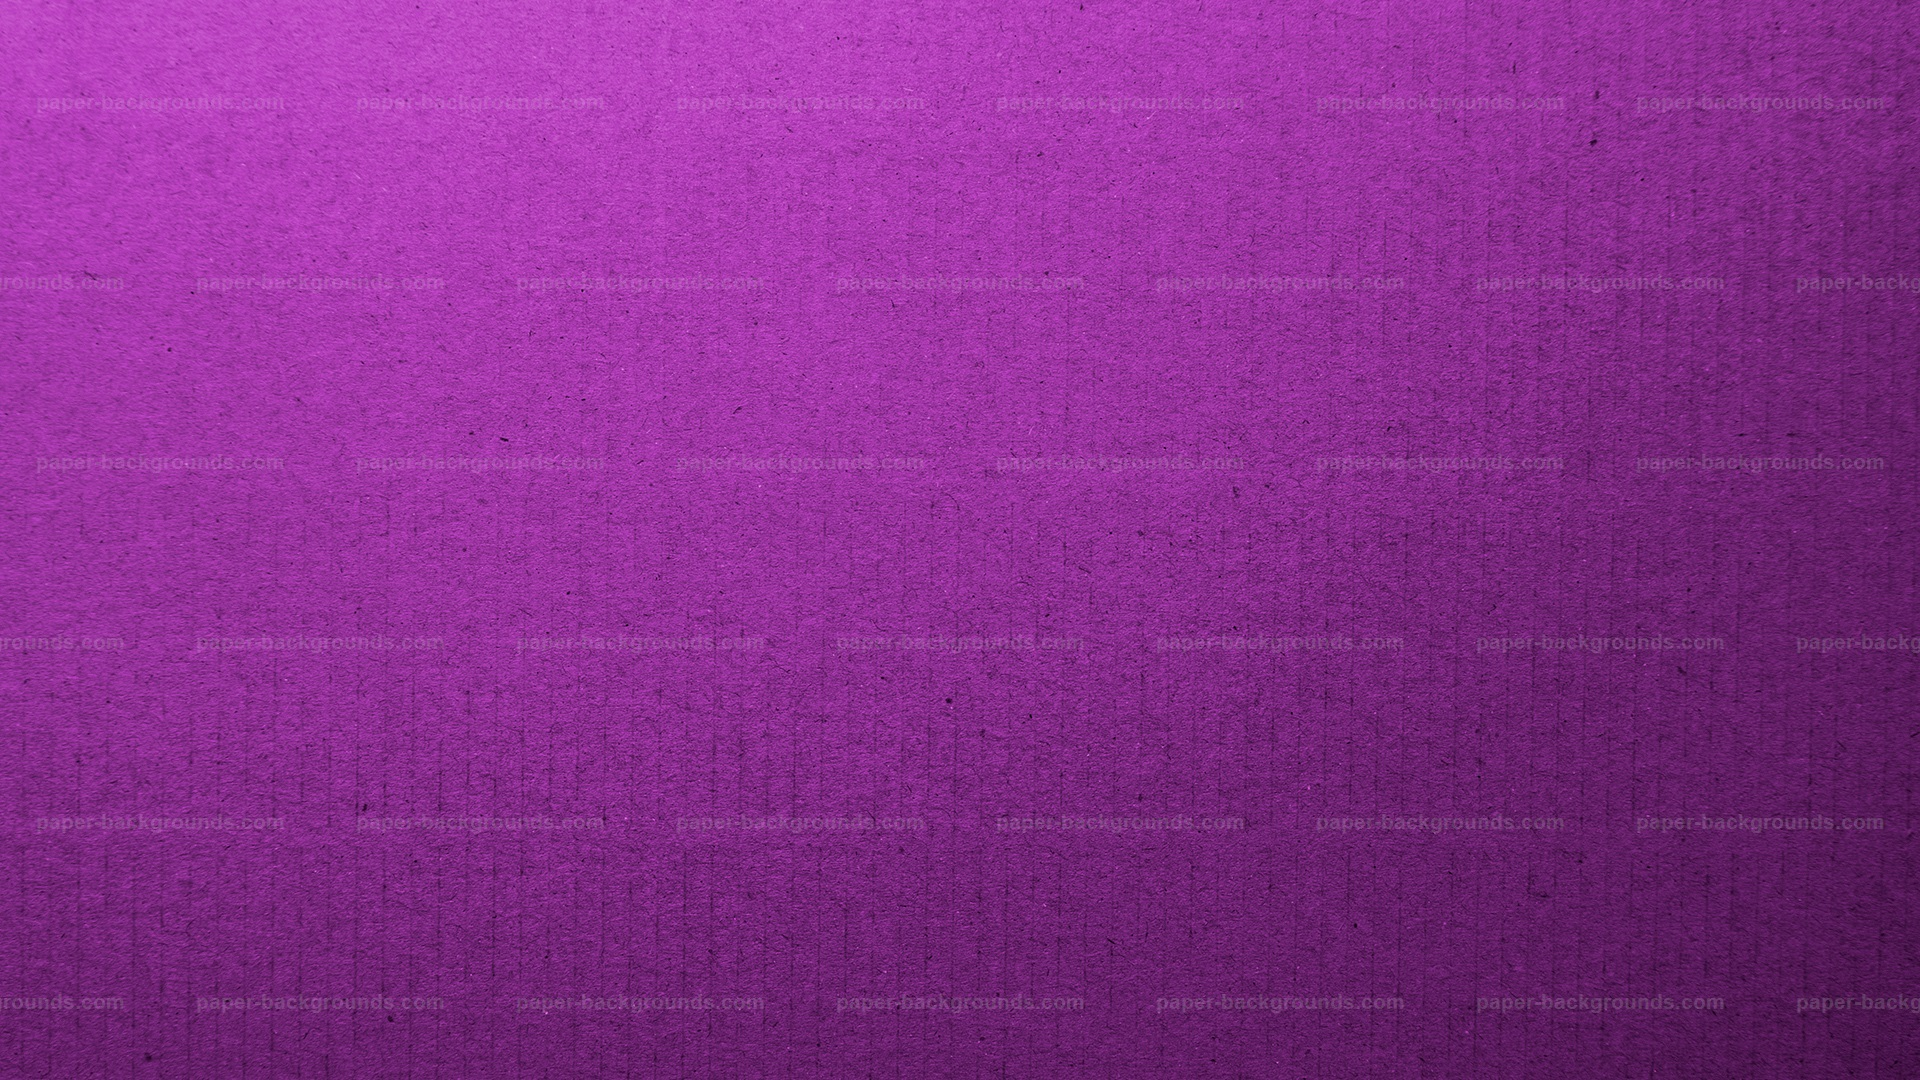 Purple Cardboard Texture Background HD